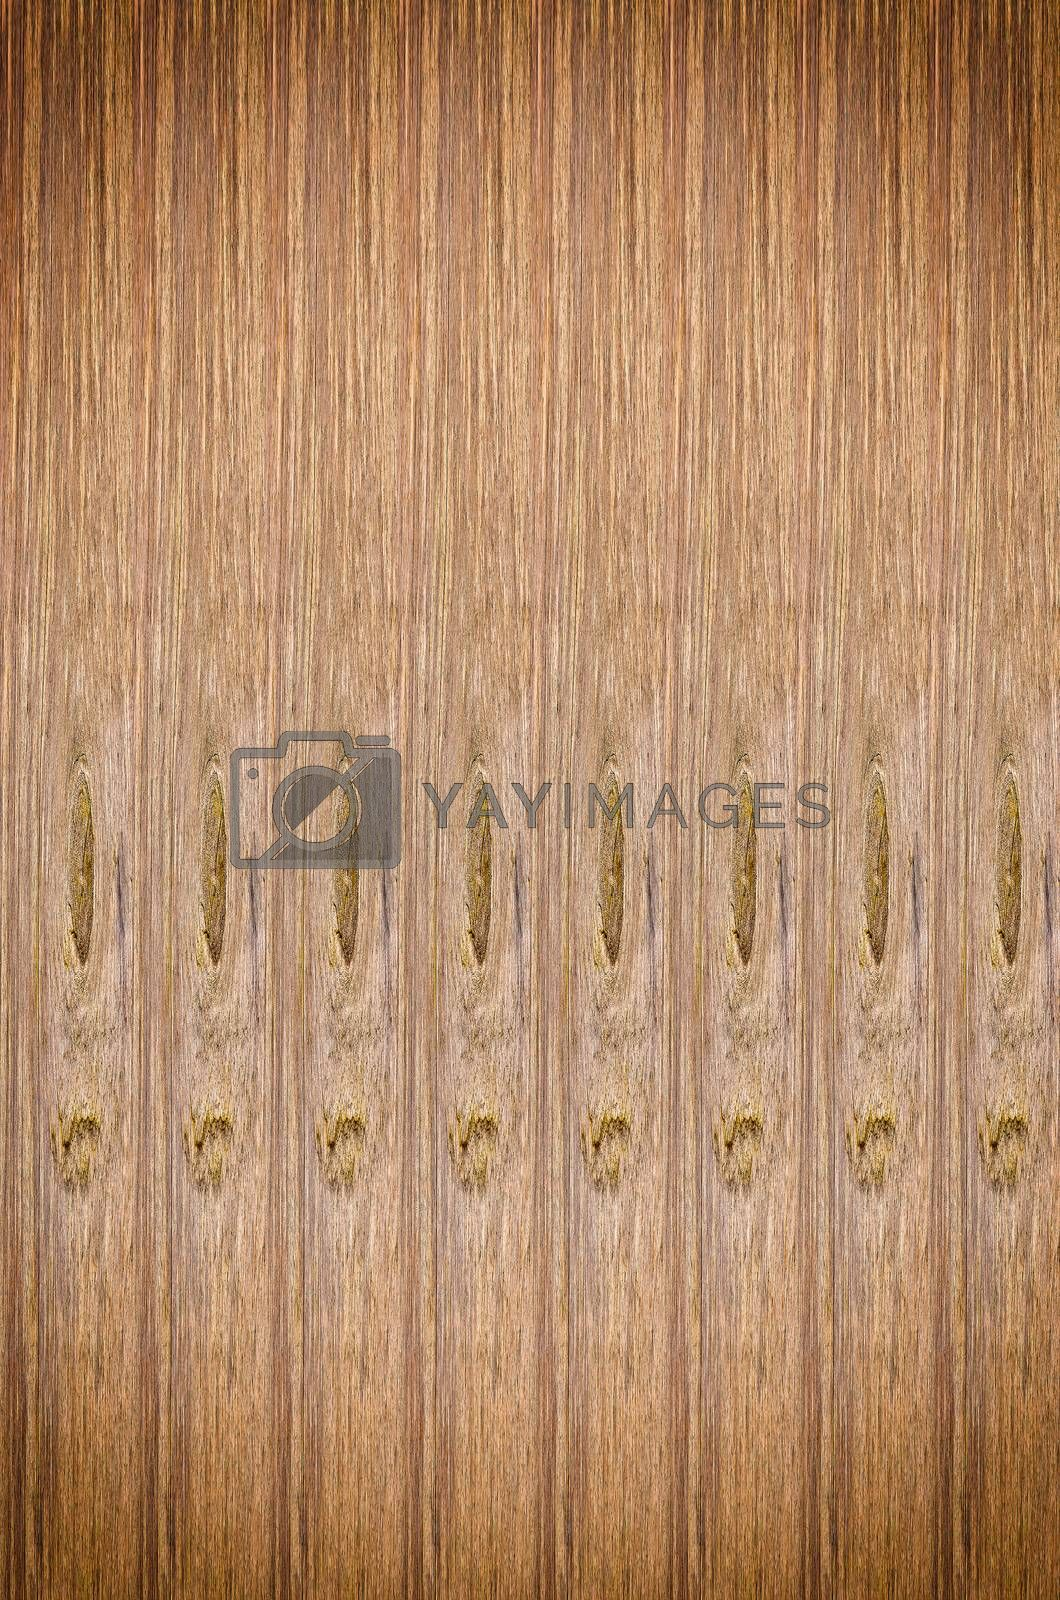 Royalty free image of wood texture by raweenuttapong